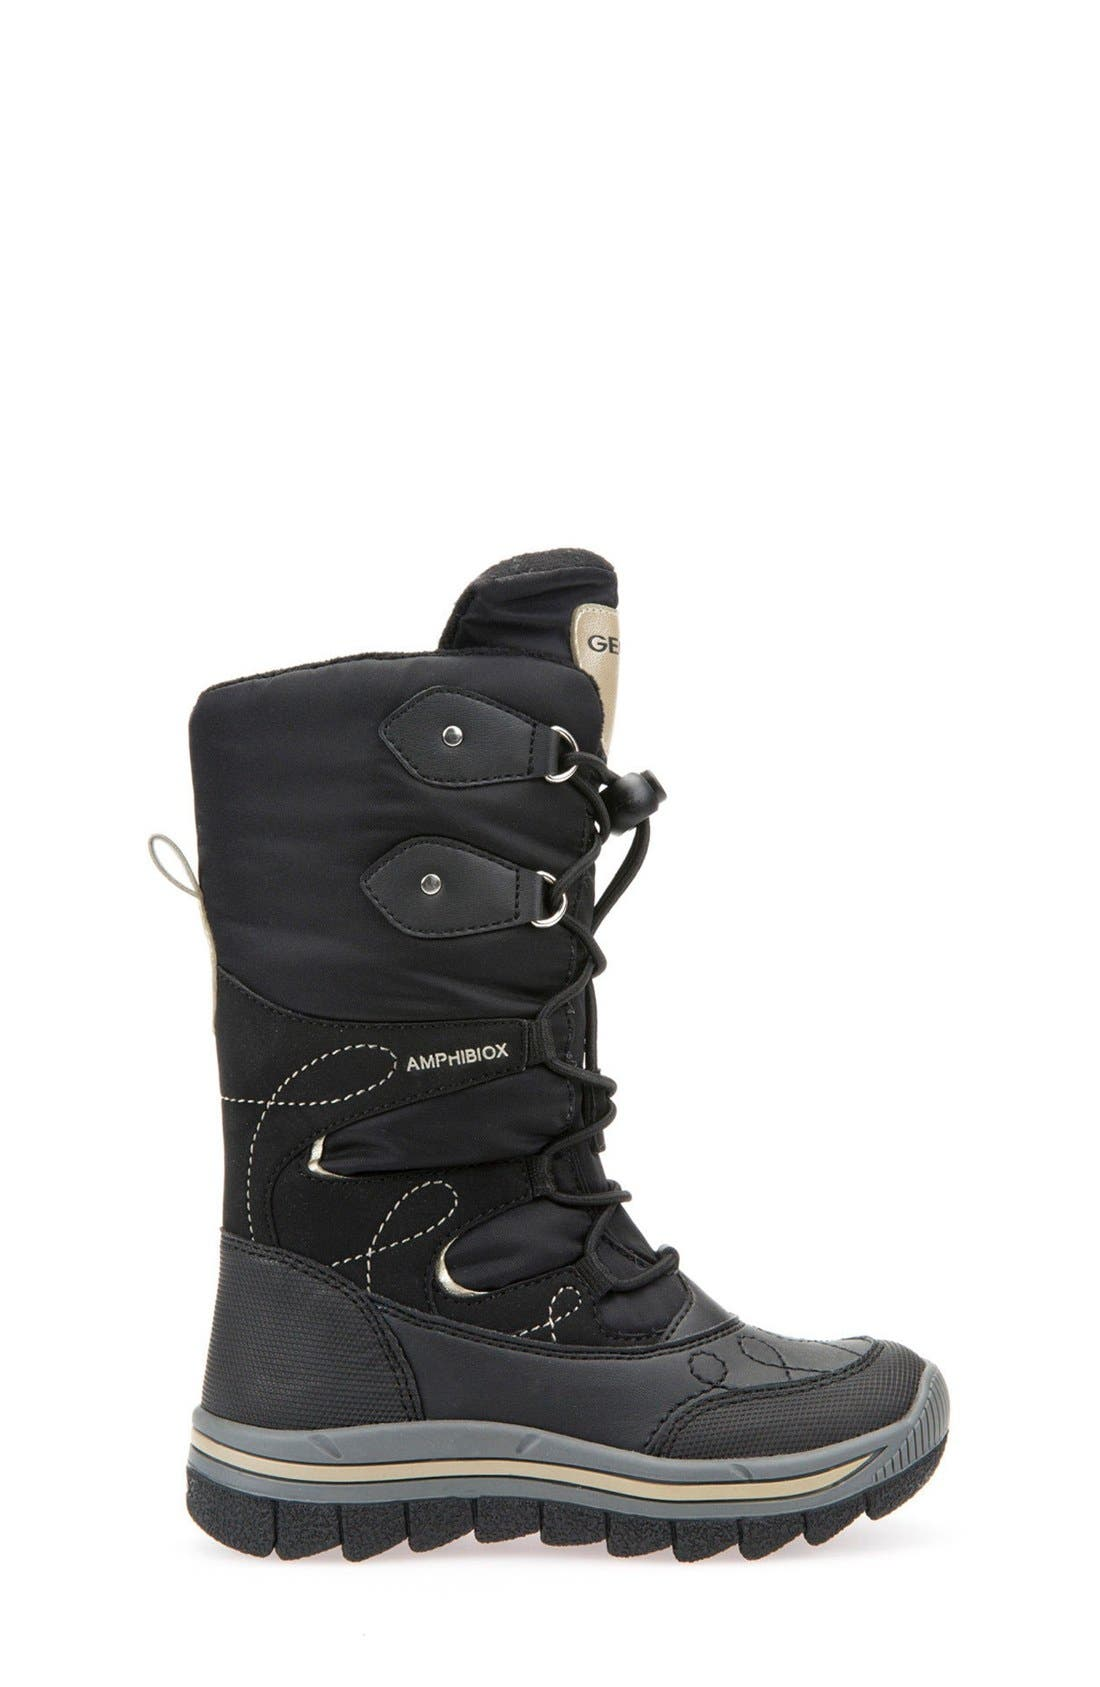 'Overland ABX' Waterproof Boot,                             Alternate thumbnail 7, color,                             Black/ Gold